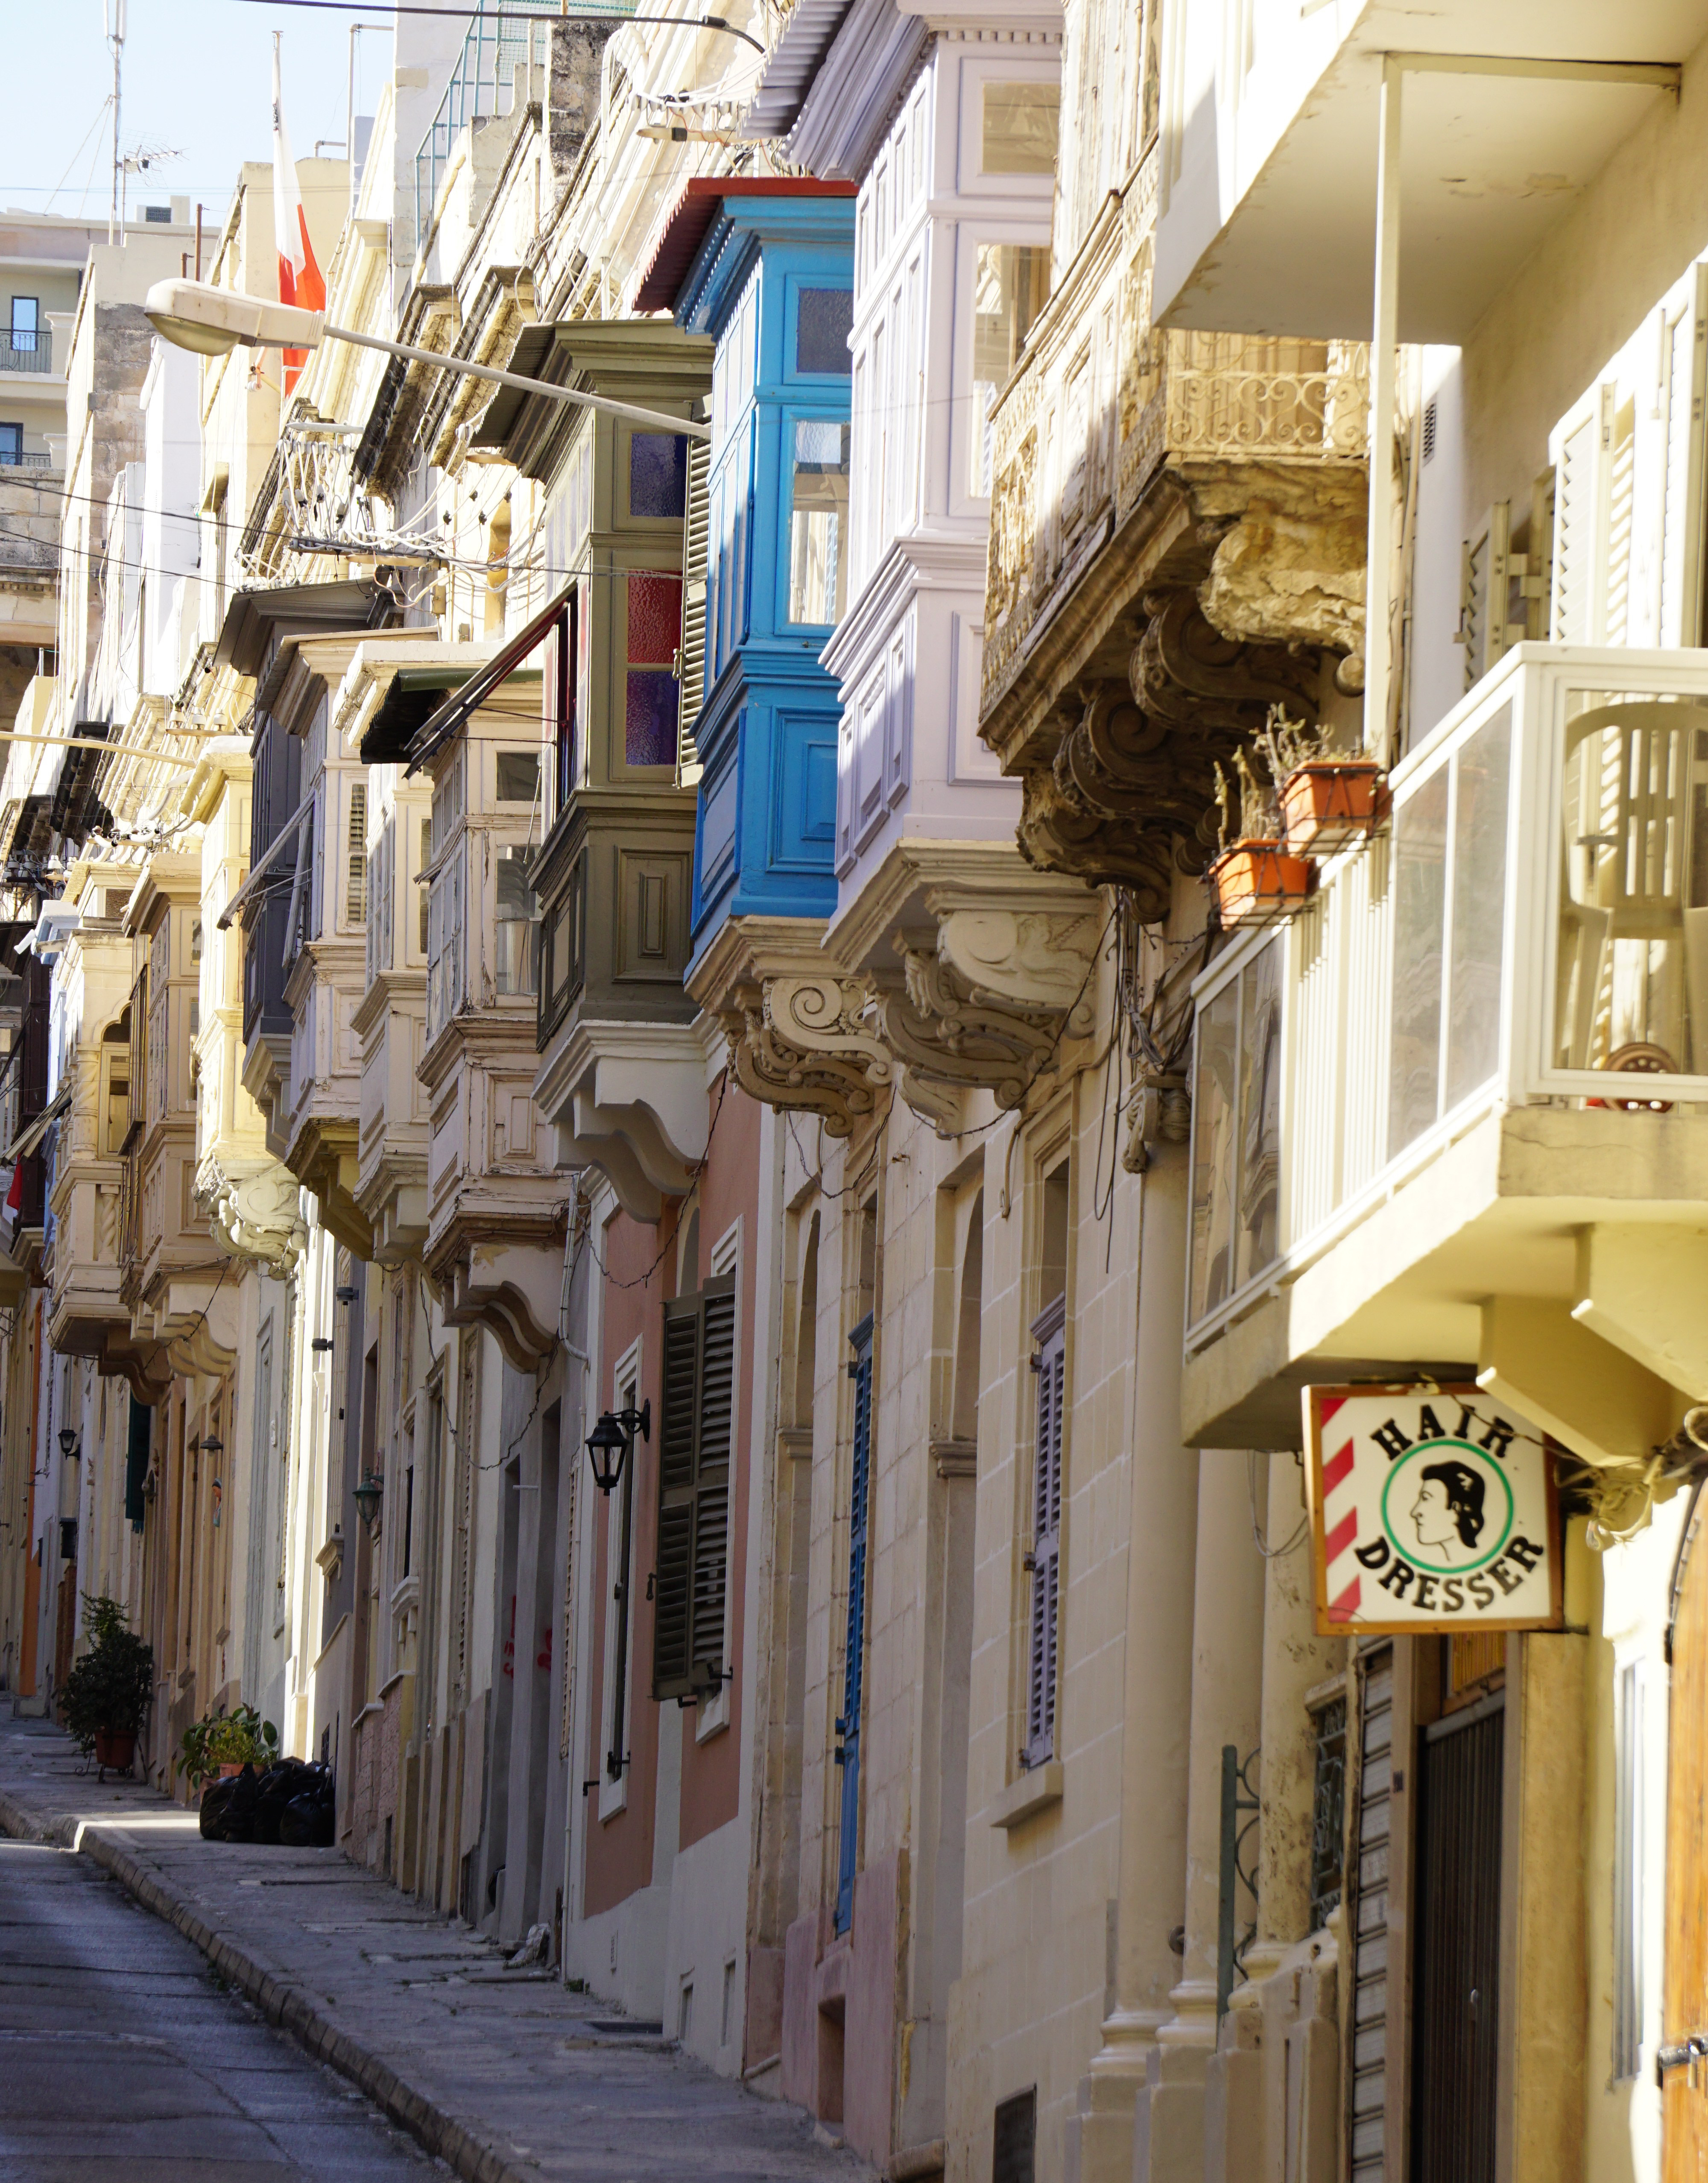 The Very First Impressions in Malta